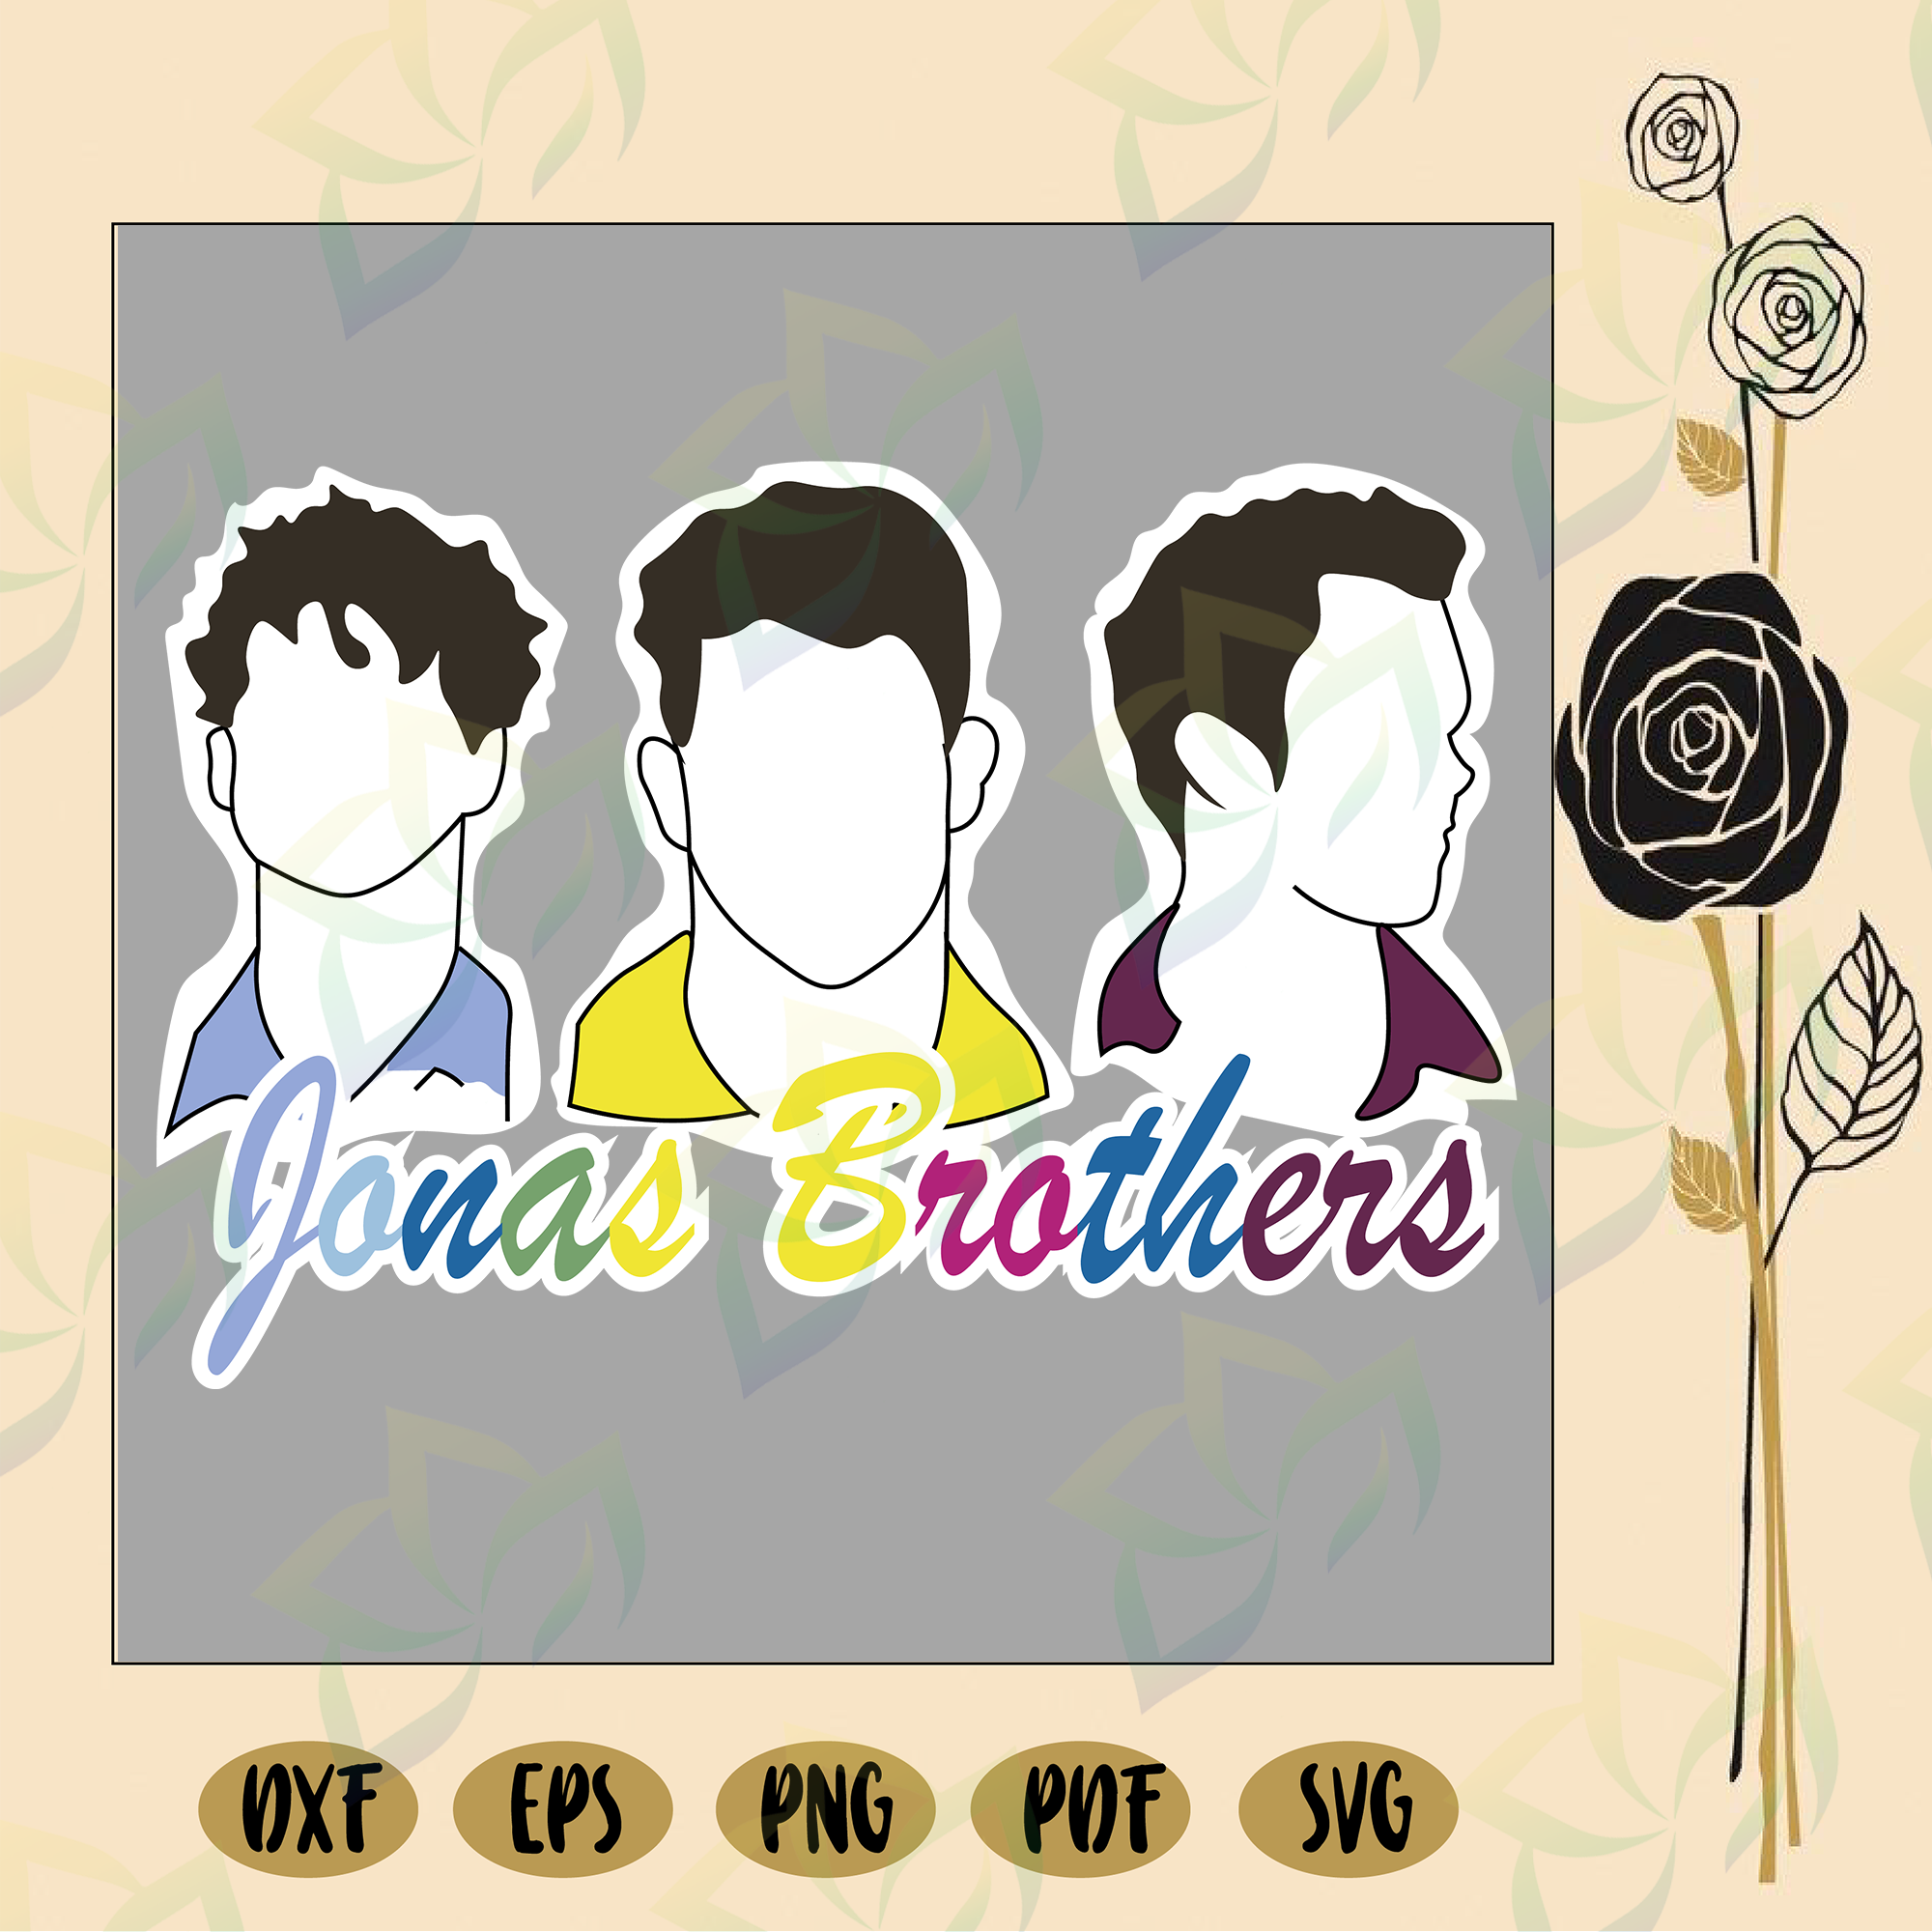 Jonas Brothers 3 coloring page | 2000x2000